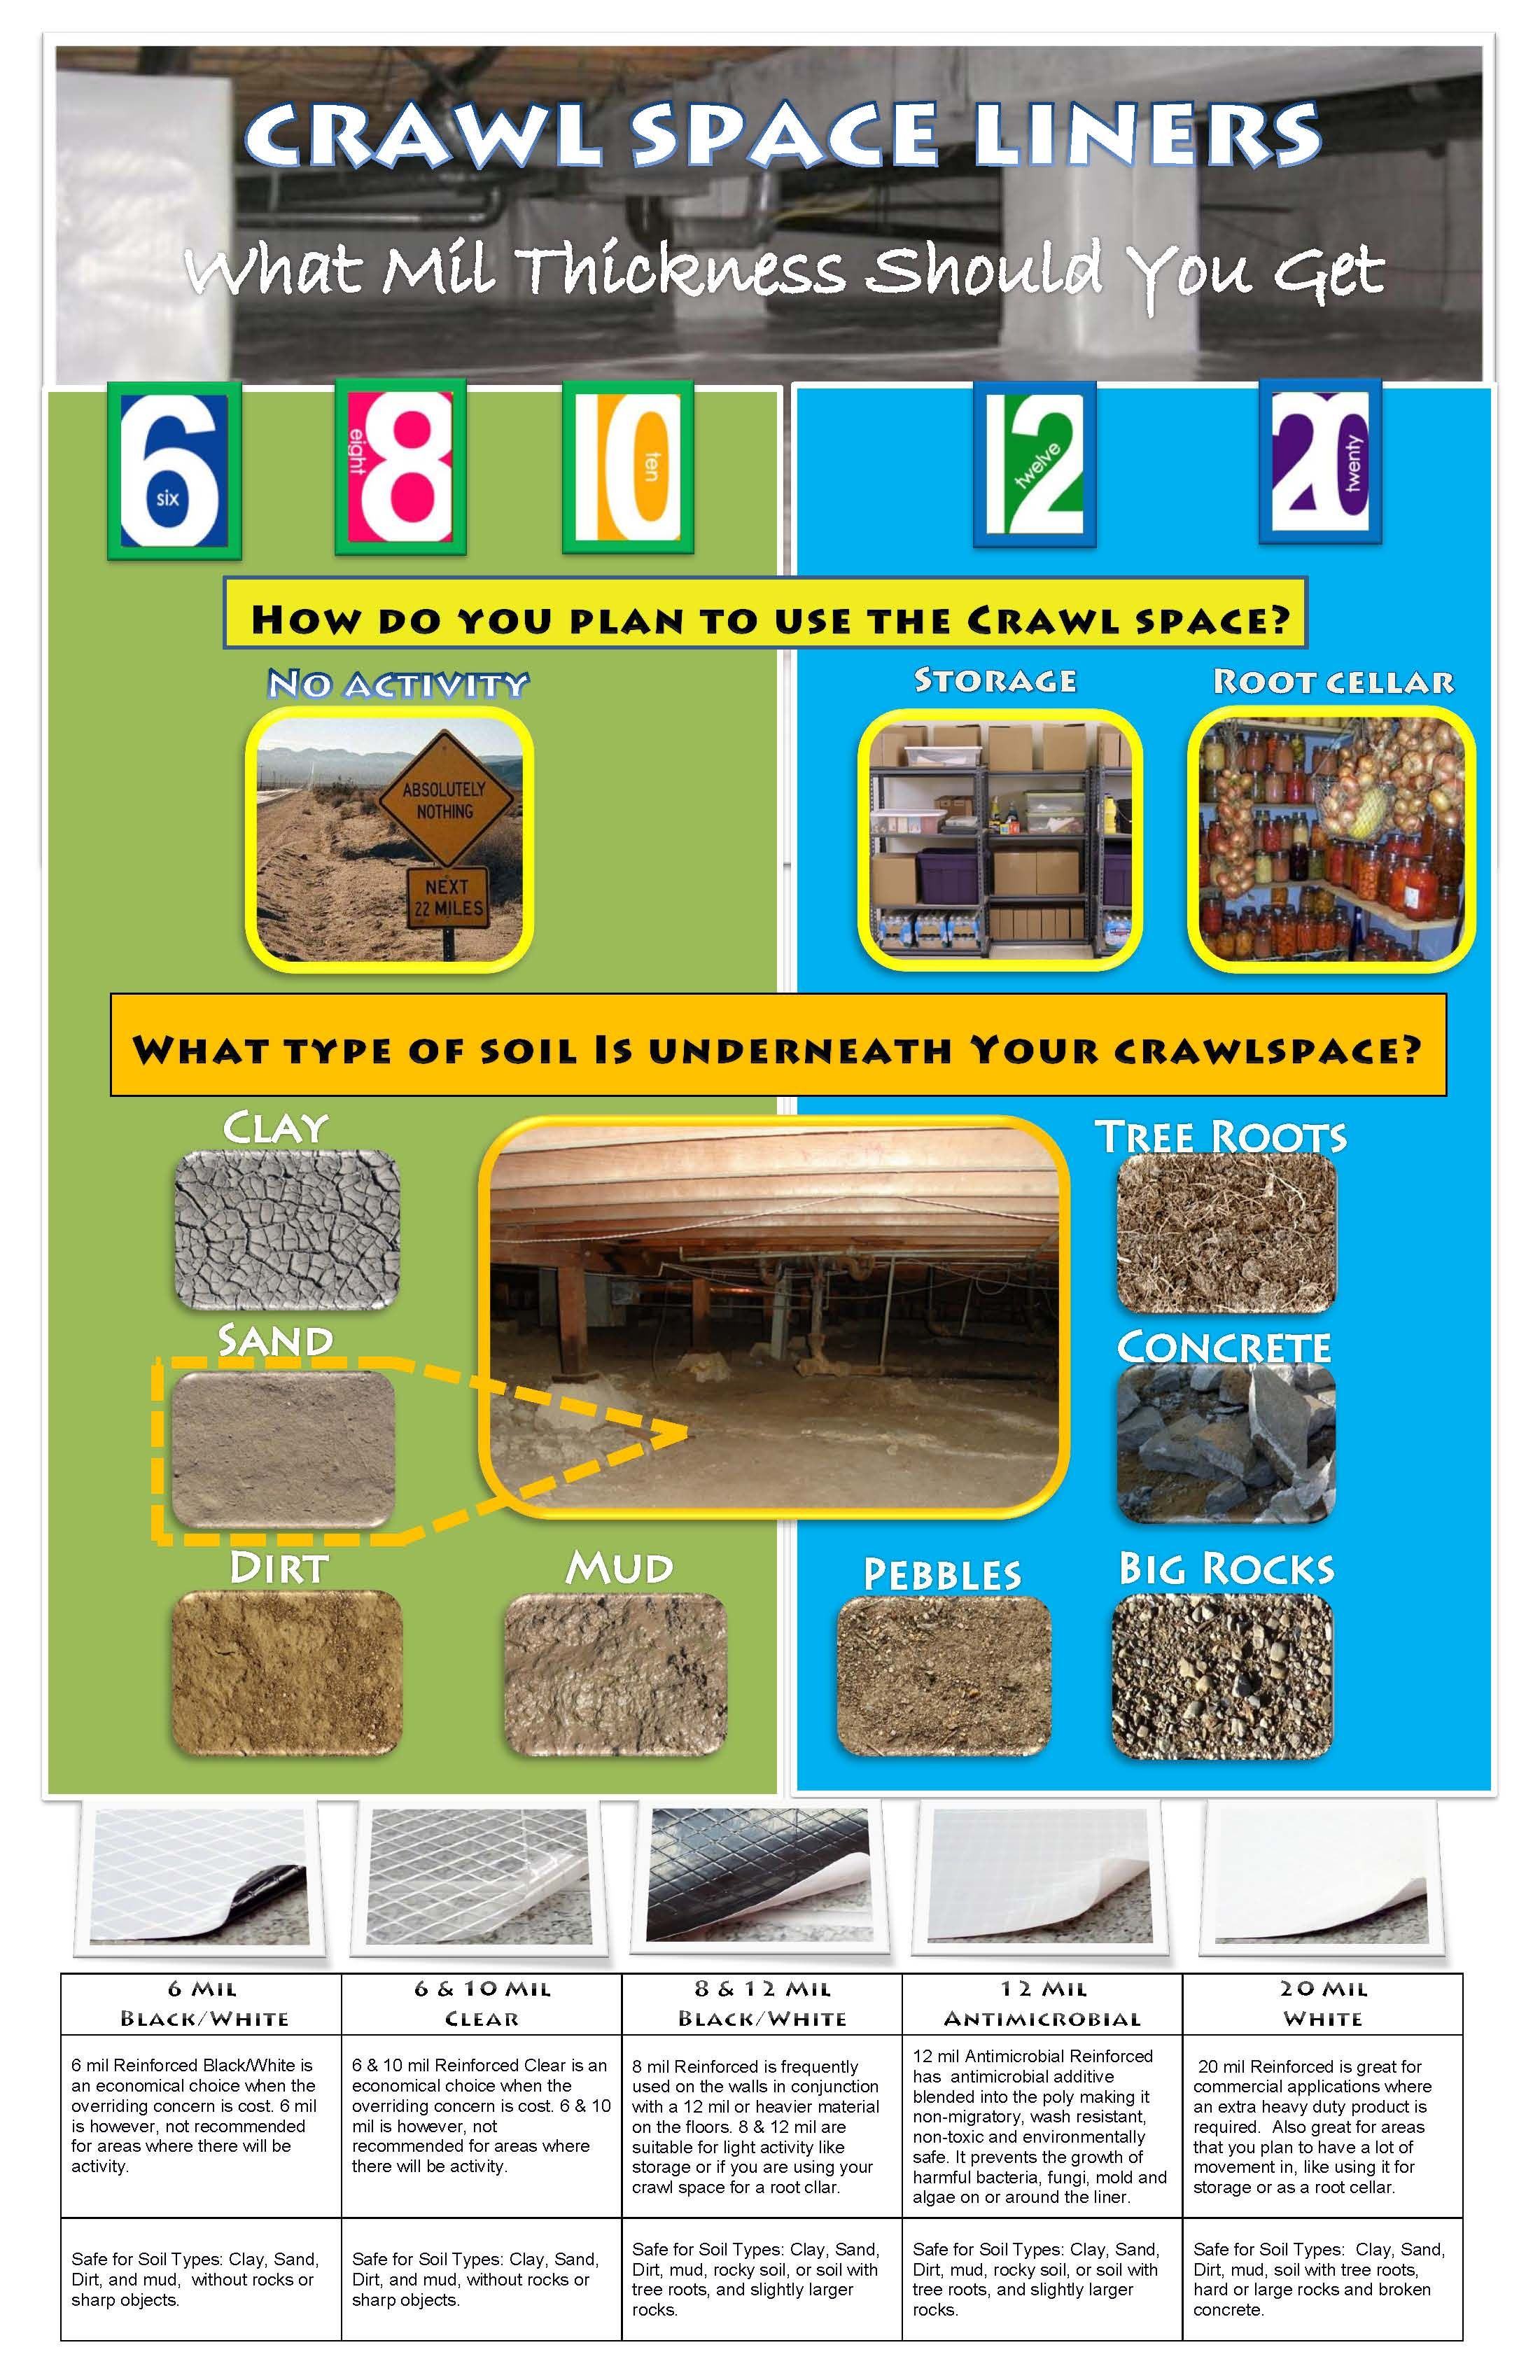 Diy Crawlspace Which Mil Thickness Should You Buy Crawlspace Crawl Space Liner Diy Crawlspace